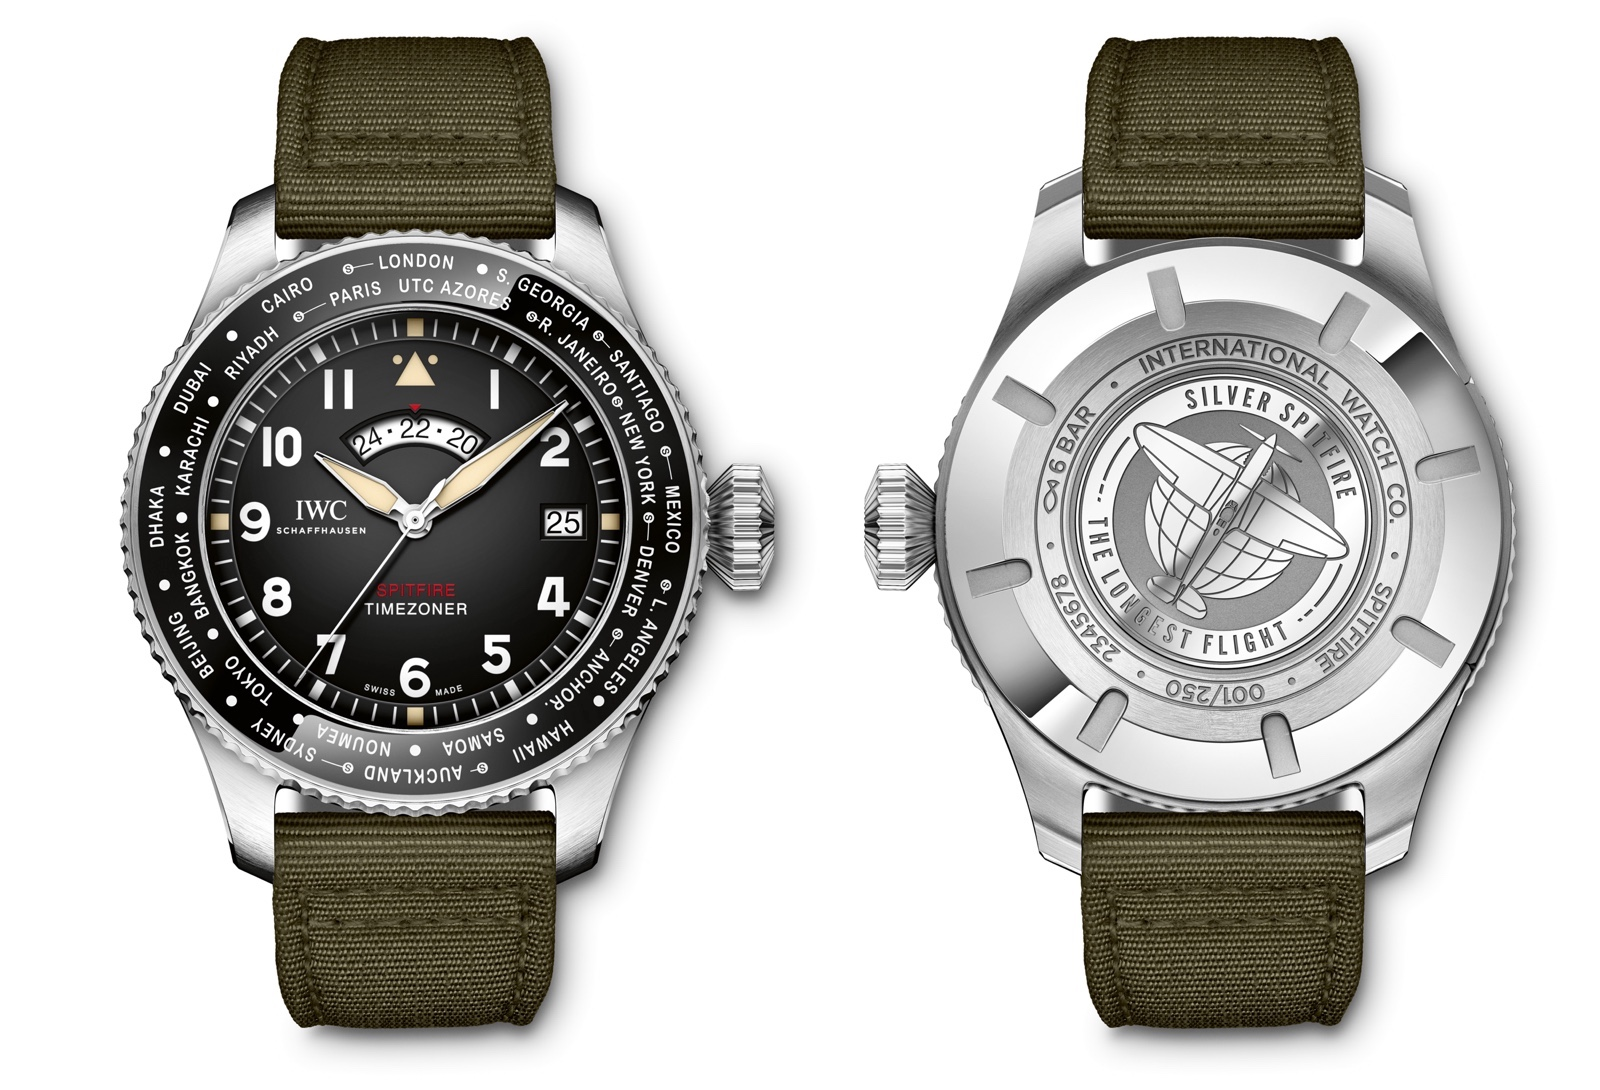 IWC-Pilots-Watch-Timezoner-Spitfire-The-Longest-Flight